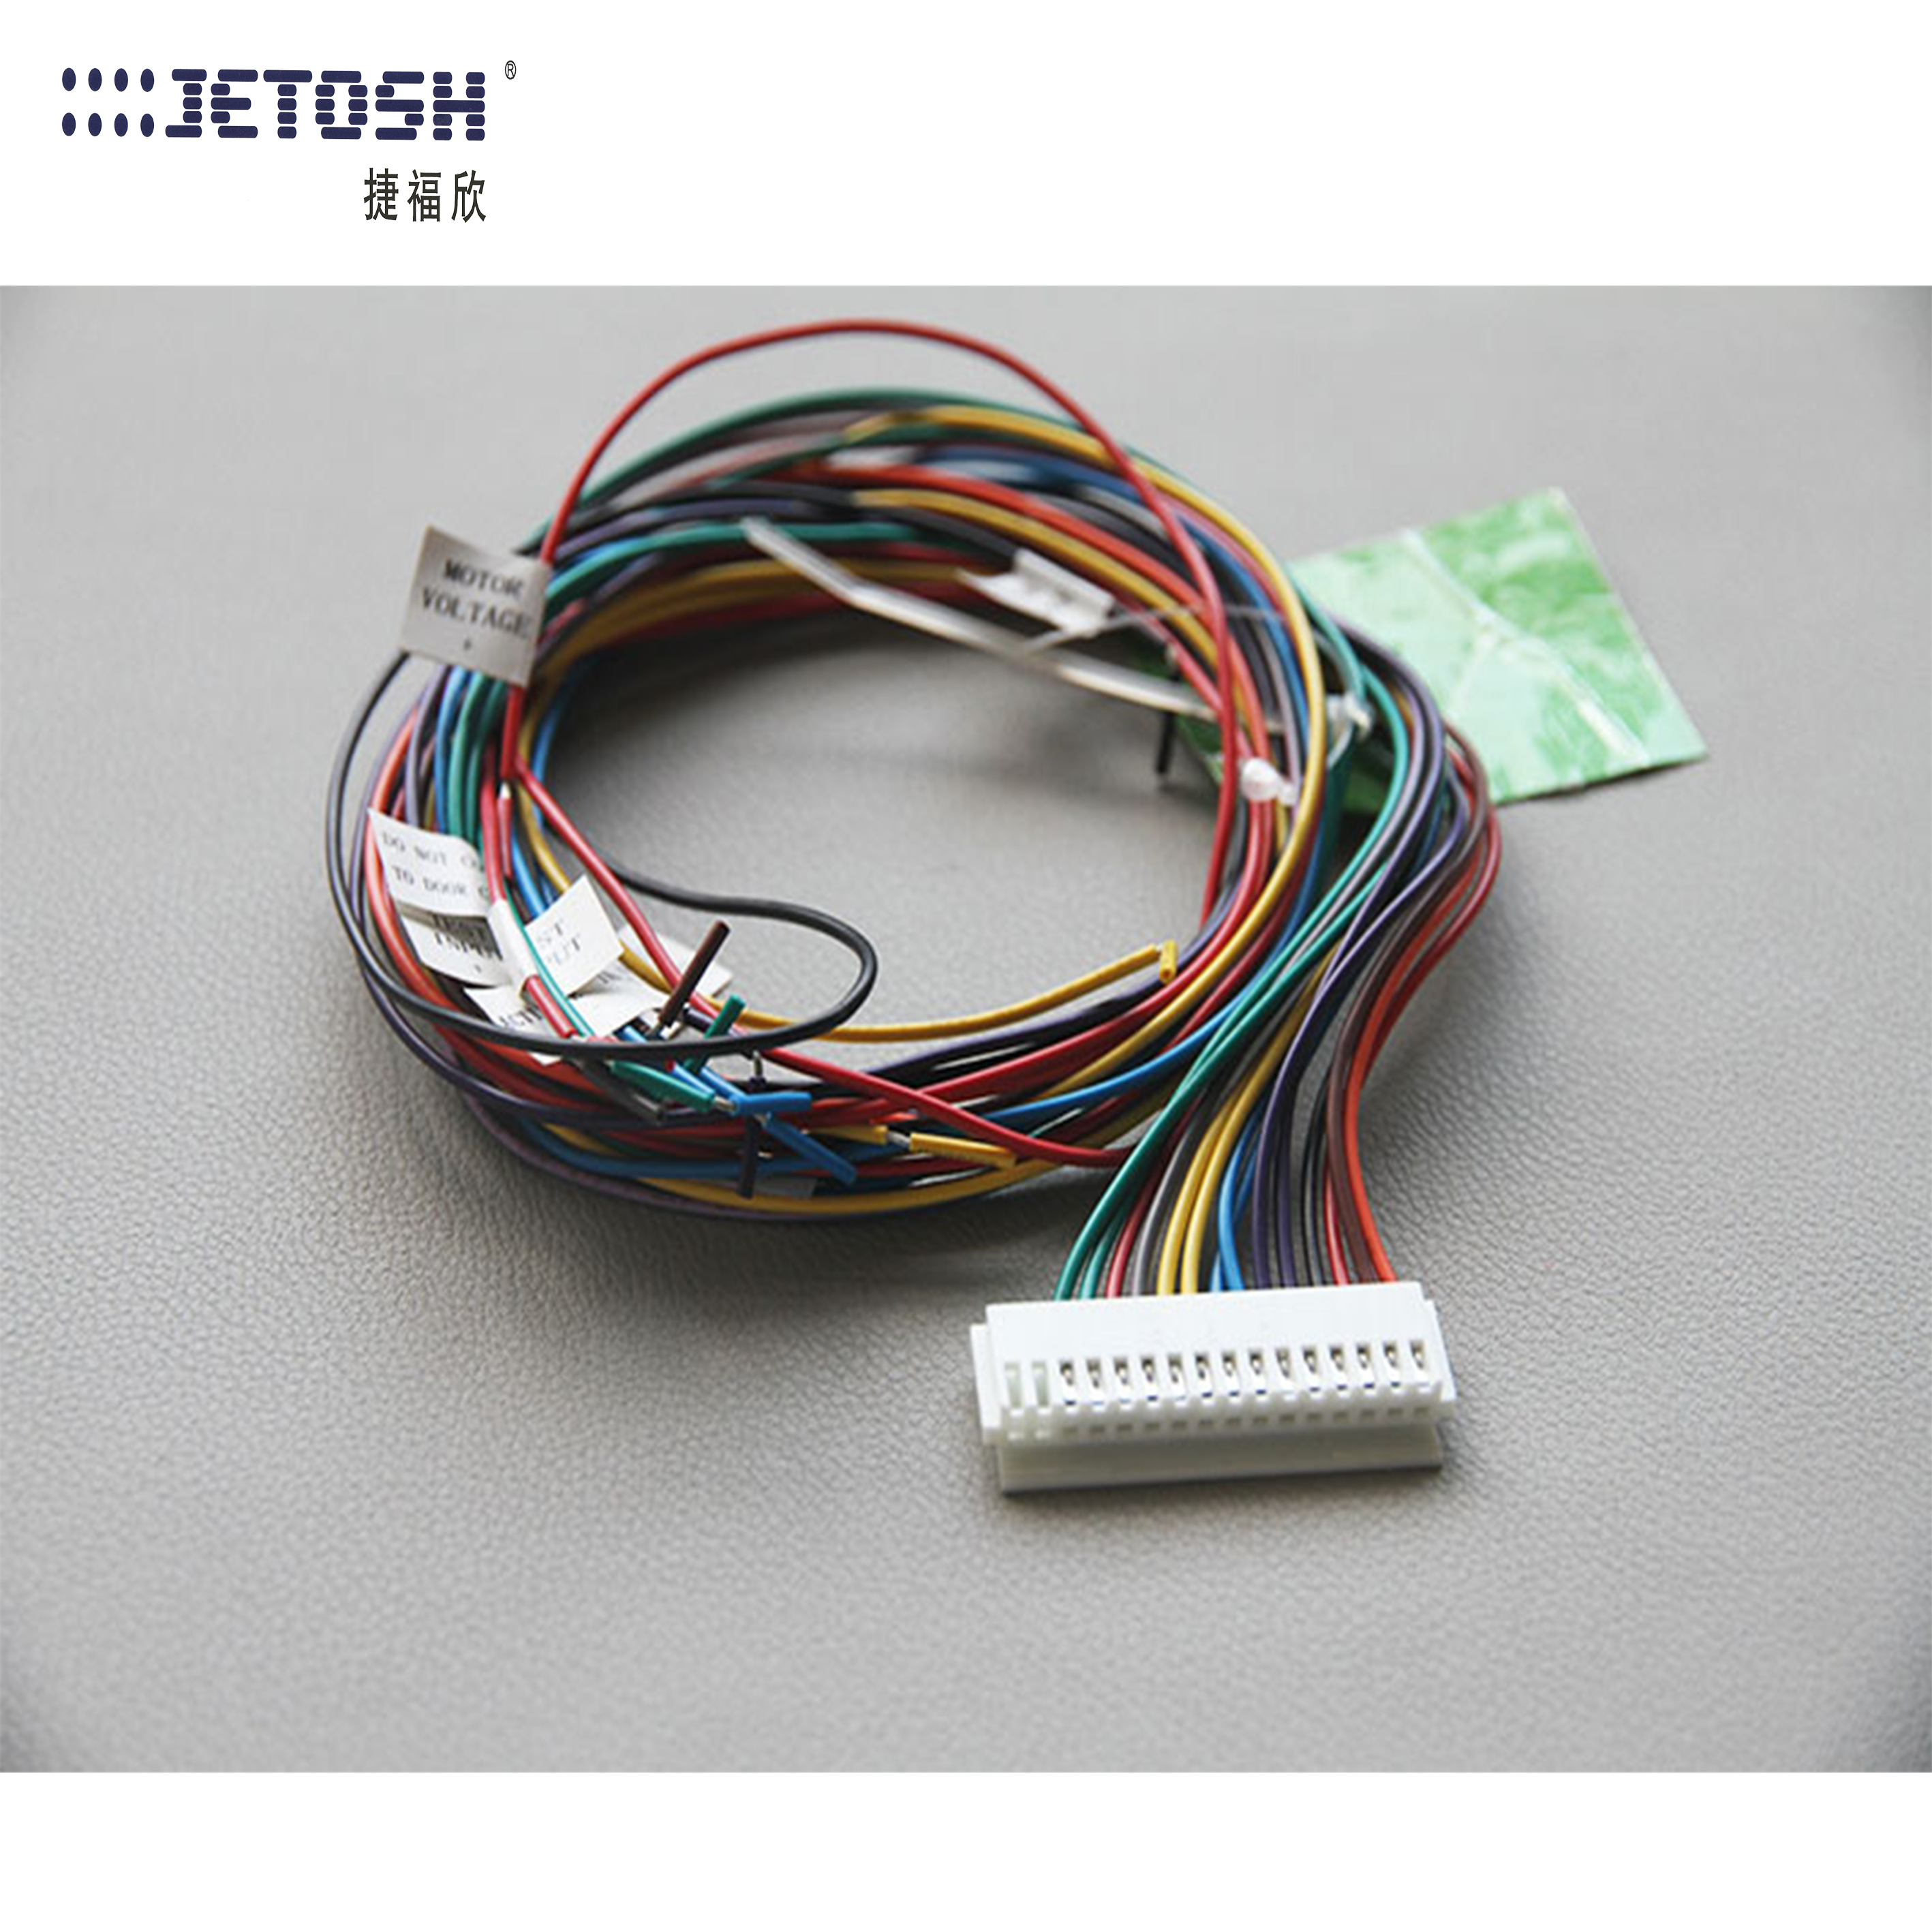 Wire harness for the automatic door|Smart Home Cable ... on pet harness, pony harness, nakamichi harness, electrical harness, alpine stereo harness, obd0 to obd1 conversion harness, dog harness, radio harness, fall protection harness, battery harness, engine harness, suspension harness, amp bypass harness, maxi-seal harness, safety harness, oxygen sensor extension harness, cable harness,